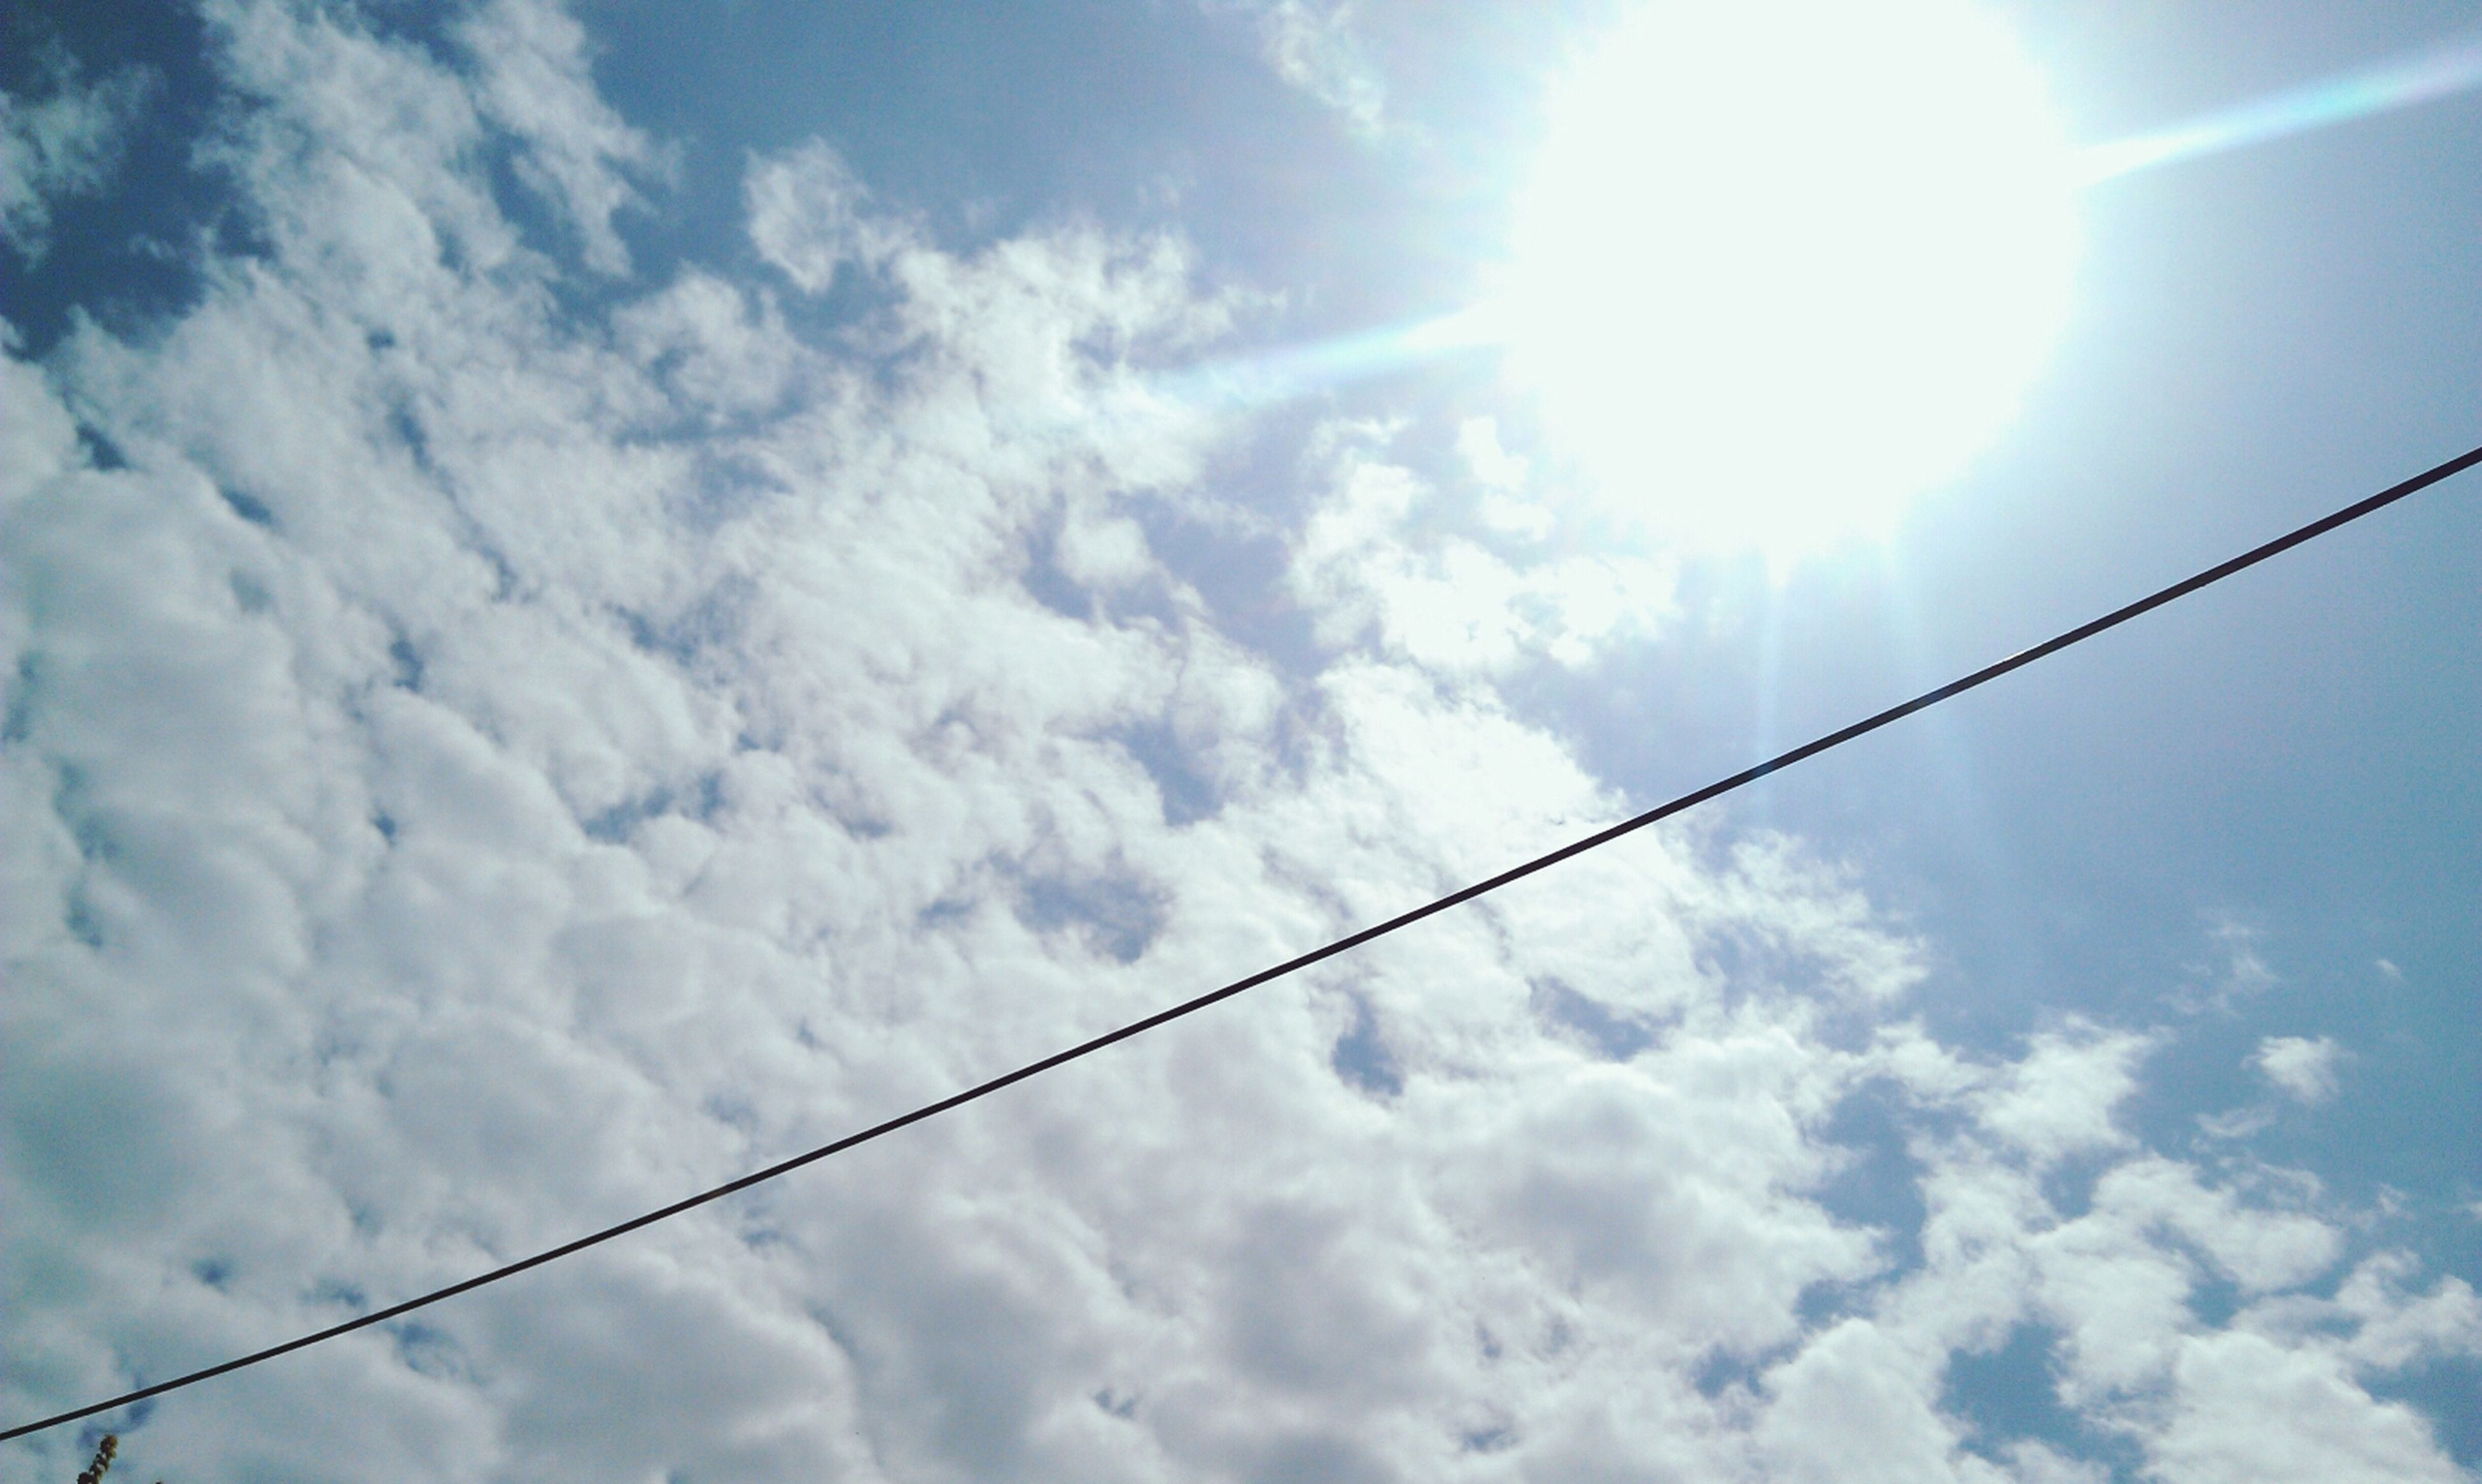 low angle view, sky, cloud - sky, power line, cloudy, cable, cloud, sun, electricity, nature, blue, tranquility, beauty in nature, sunlight, sunbeam, power supply, outdoors, day, connection, no people